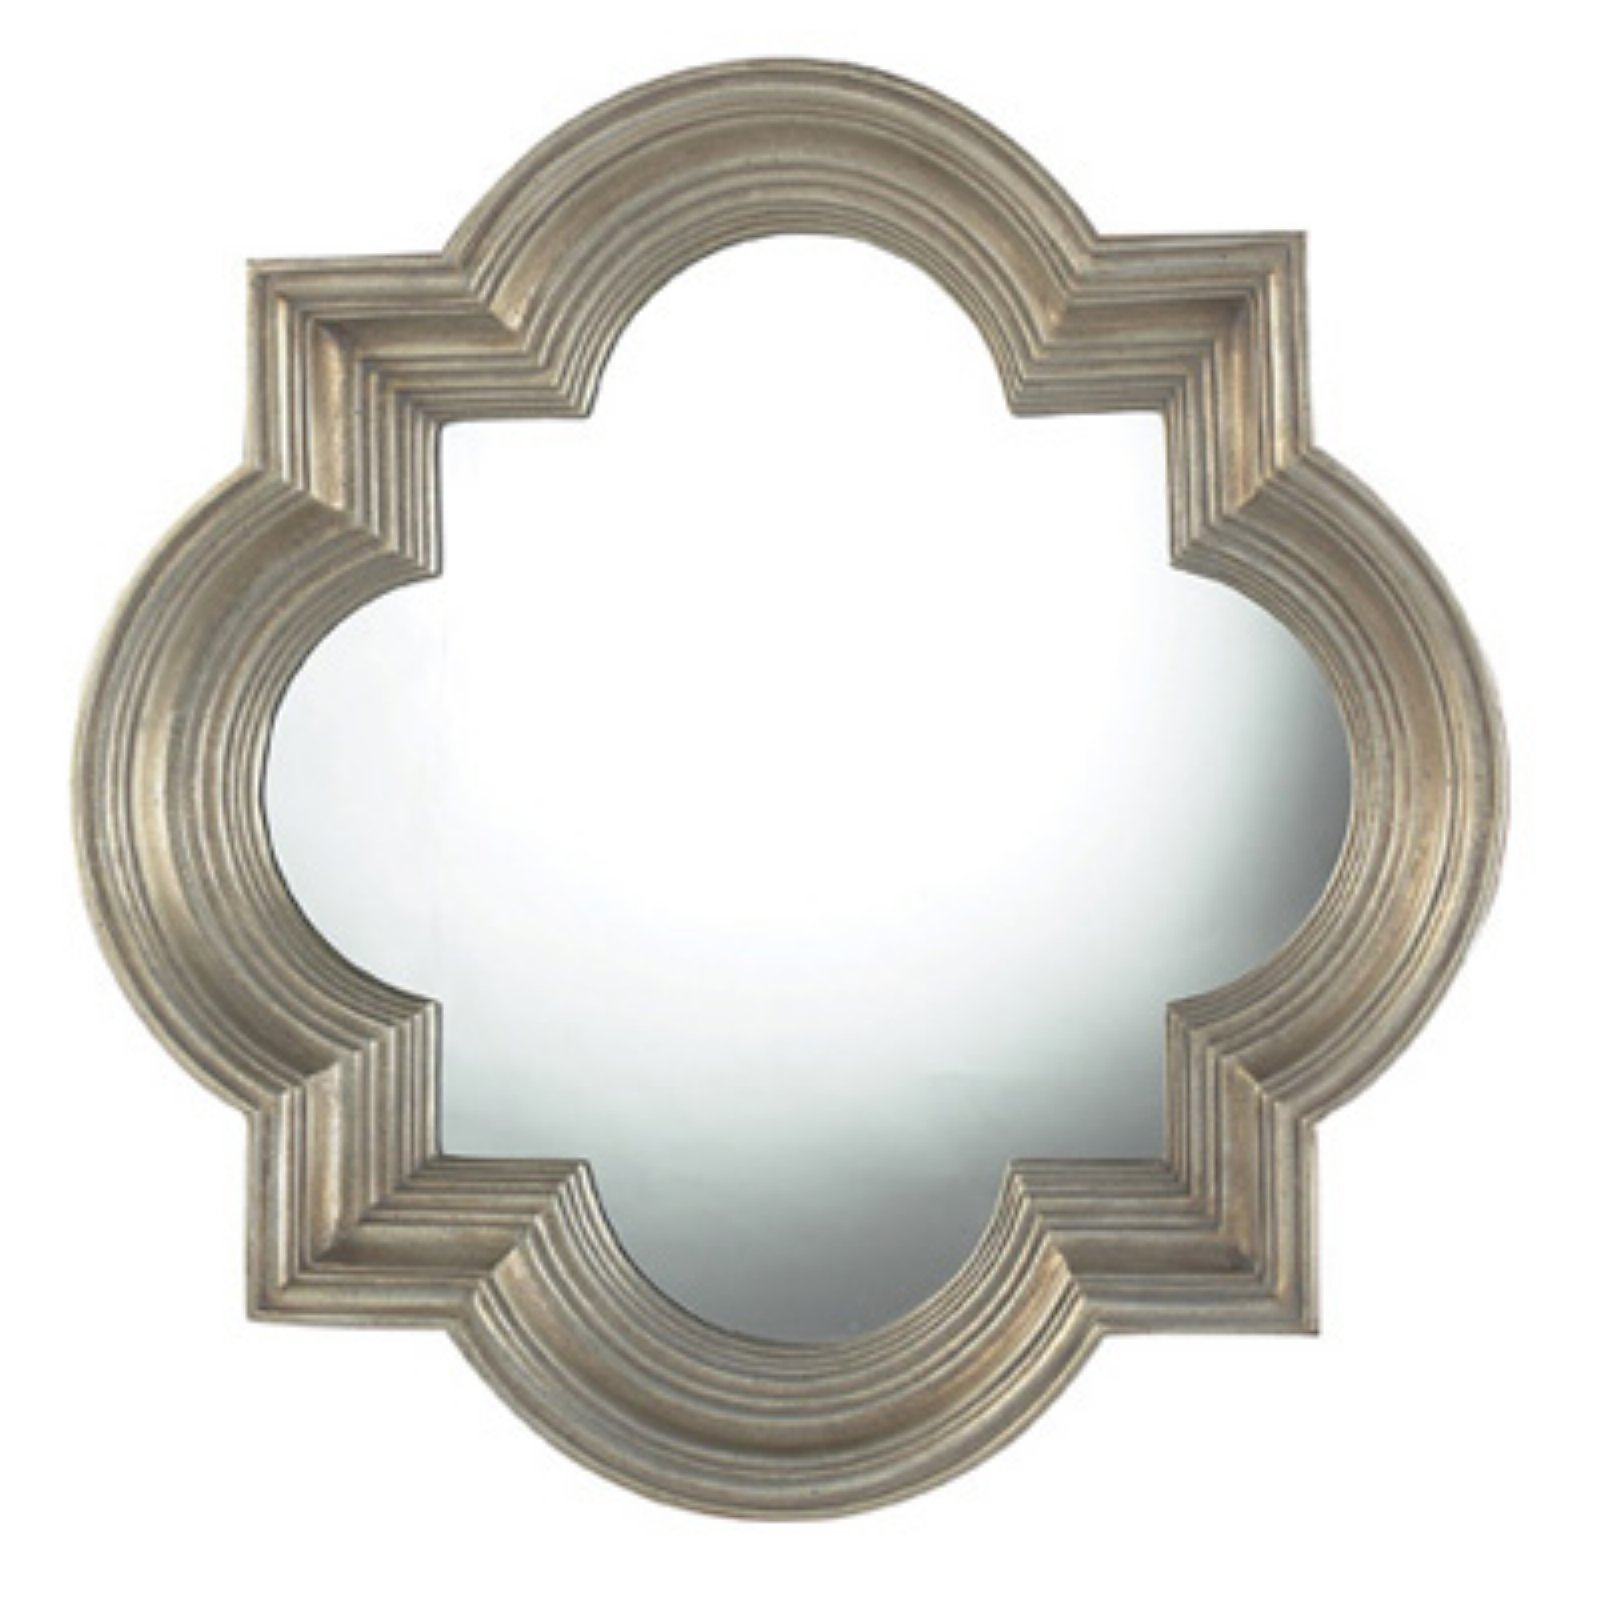 Sterling Obourne Midland Quatrefoil Mirror - 30W x 30H in.